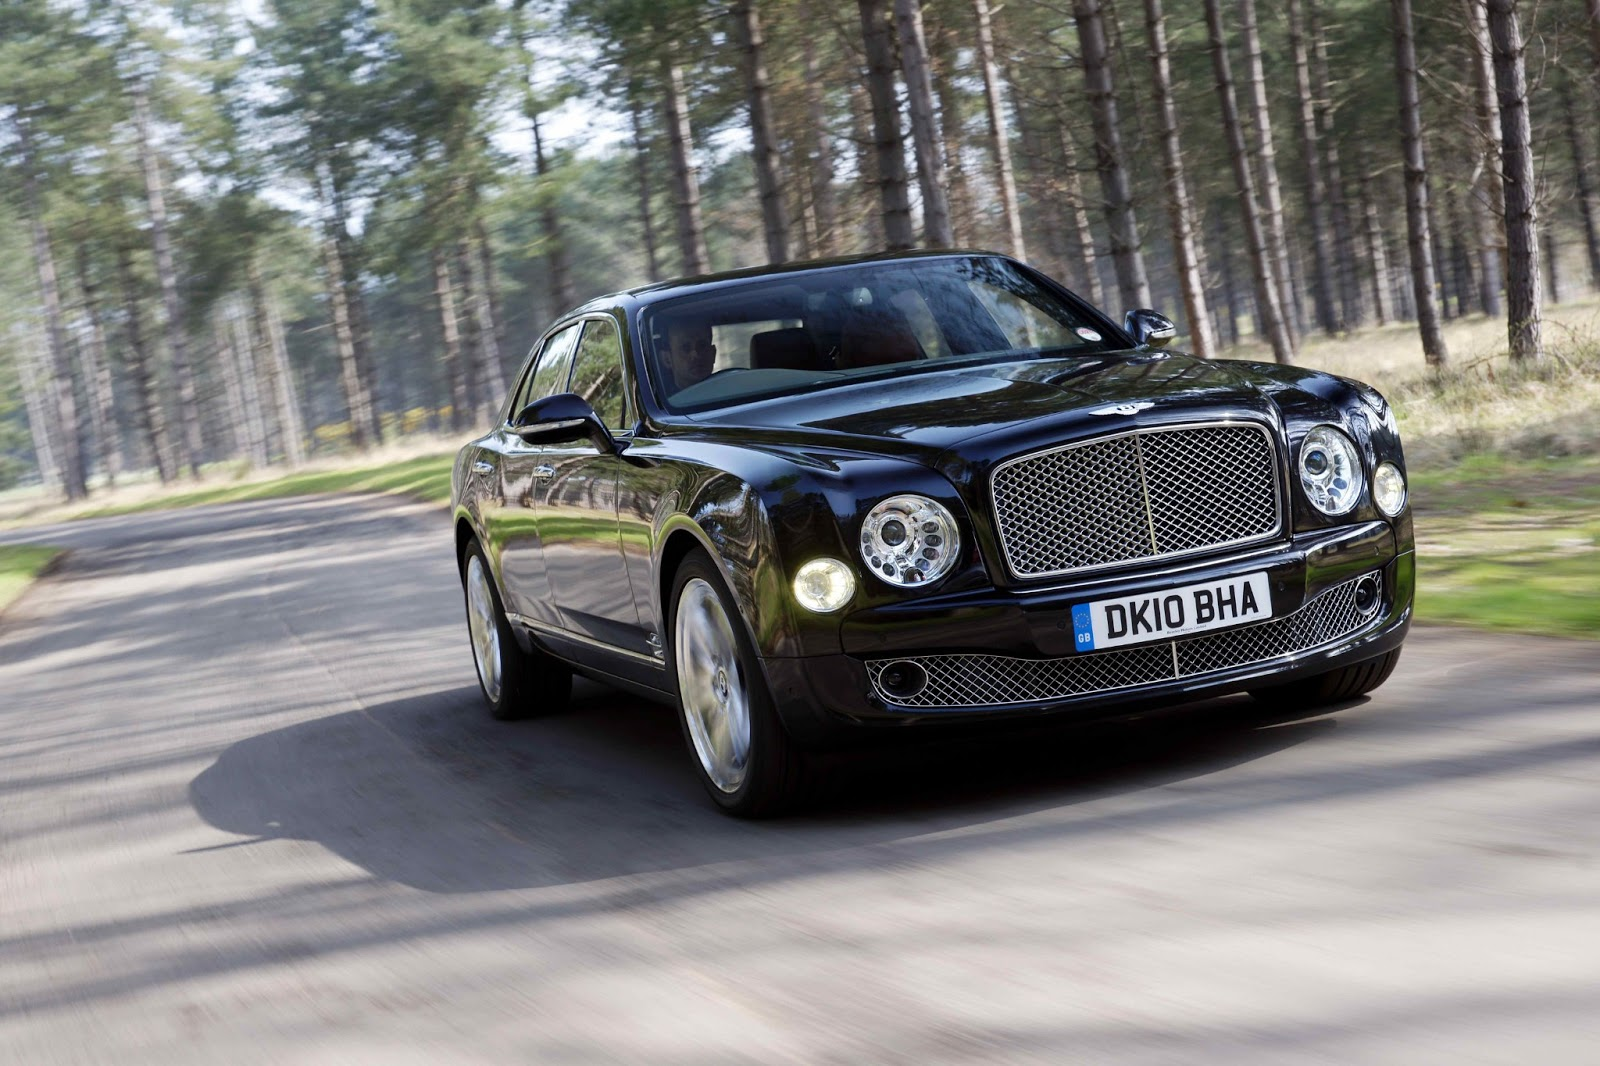 bentley mulsanne 2010 hd wallpapers interiors and exteriors pictures infinity cars 2 u. Black Bedroom Furniture Sets. Home Design Ideas